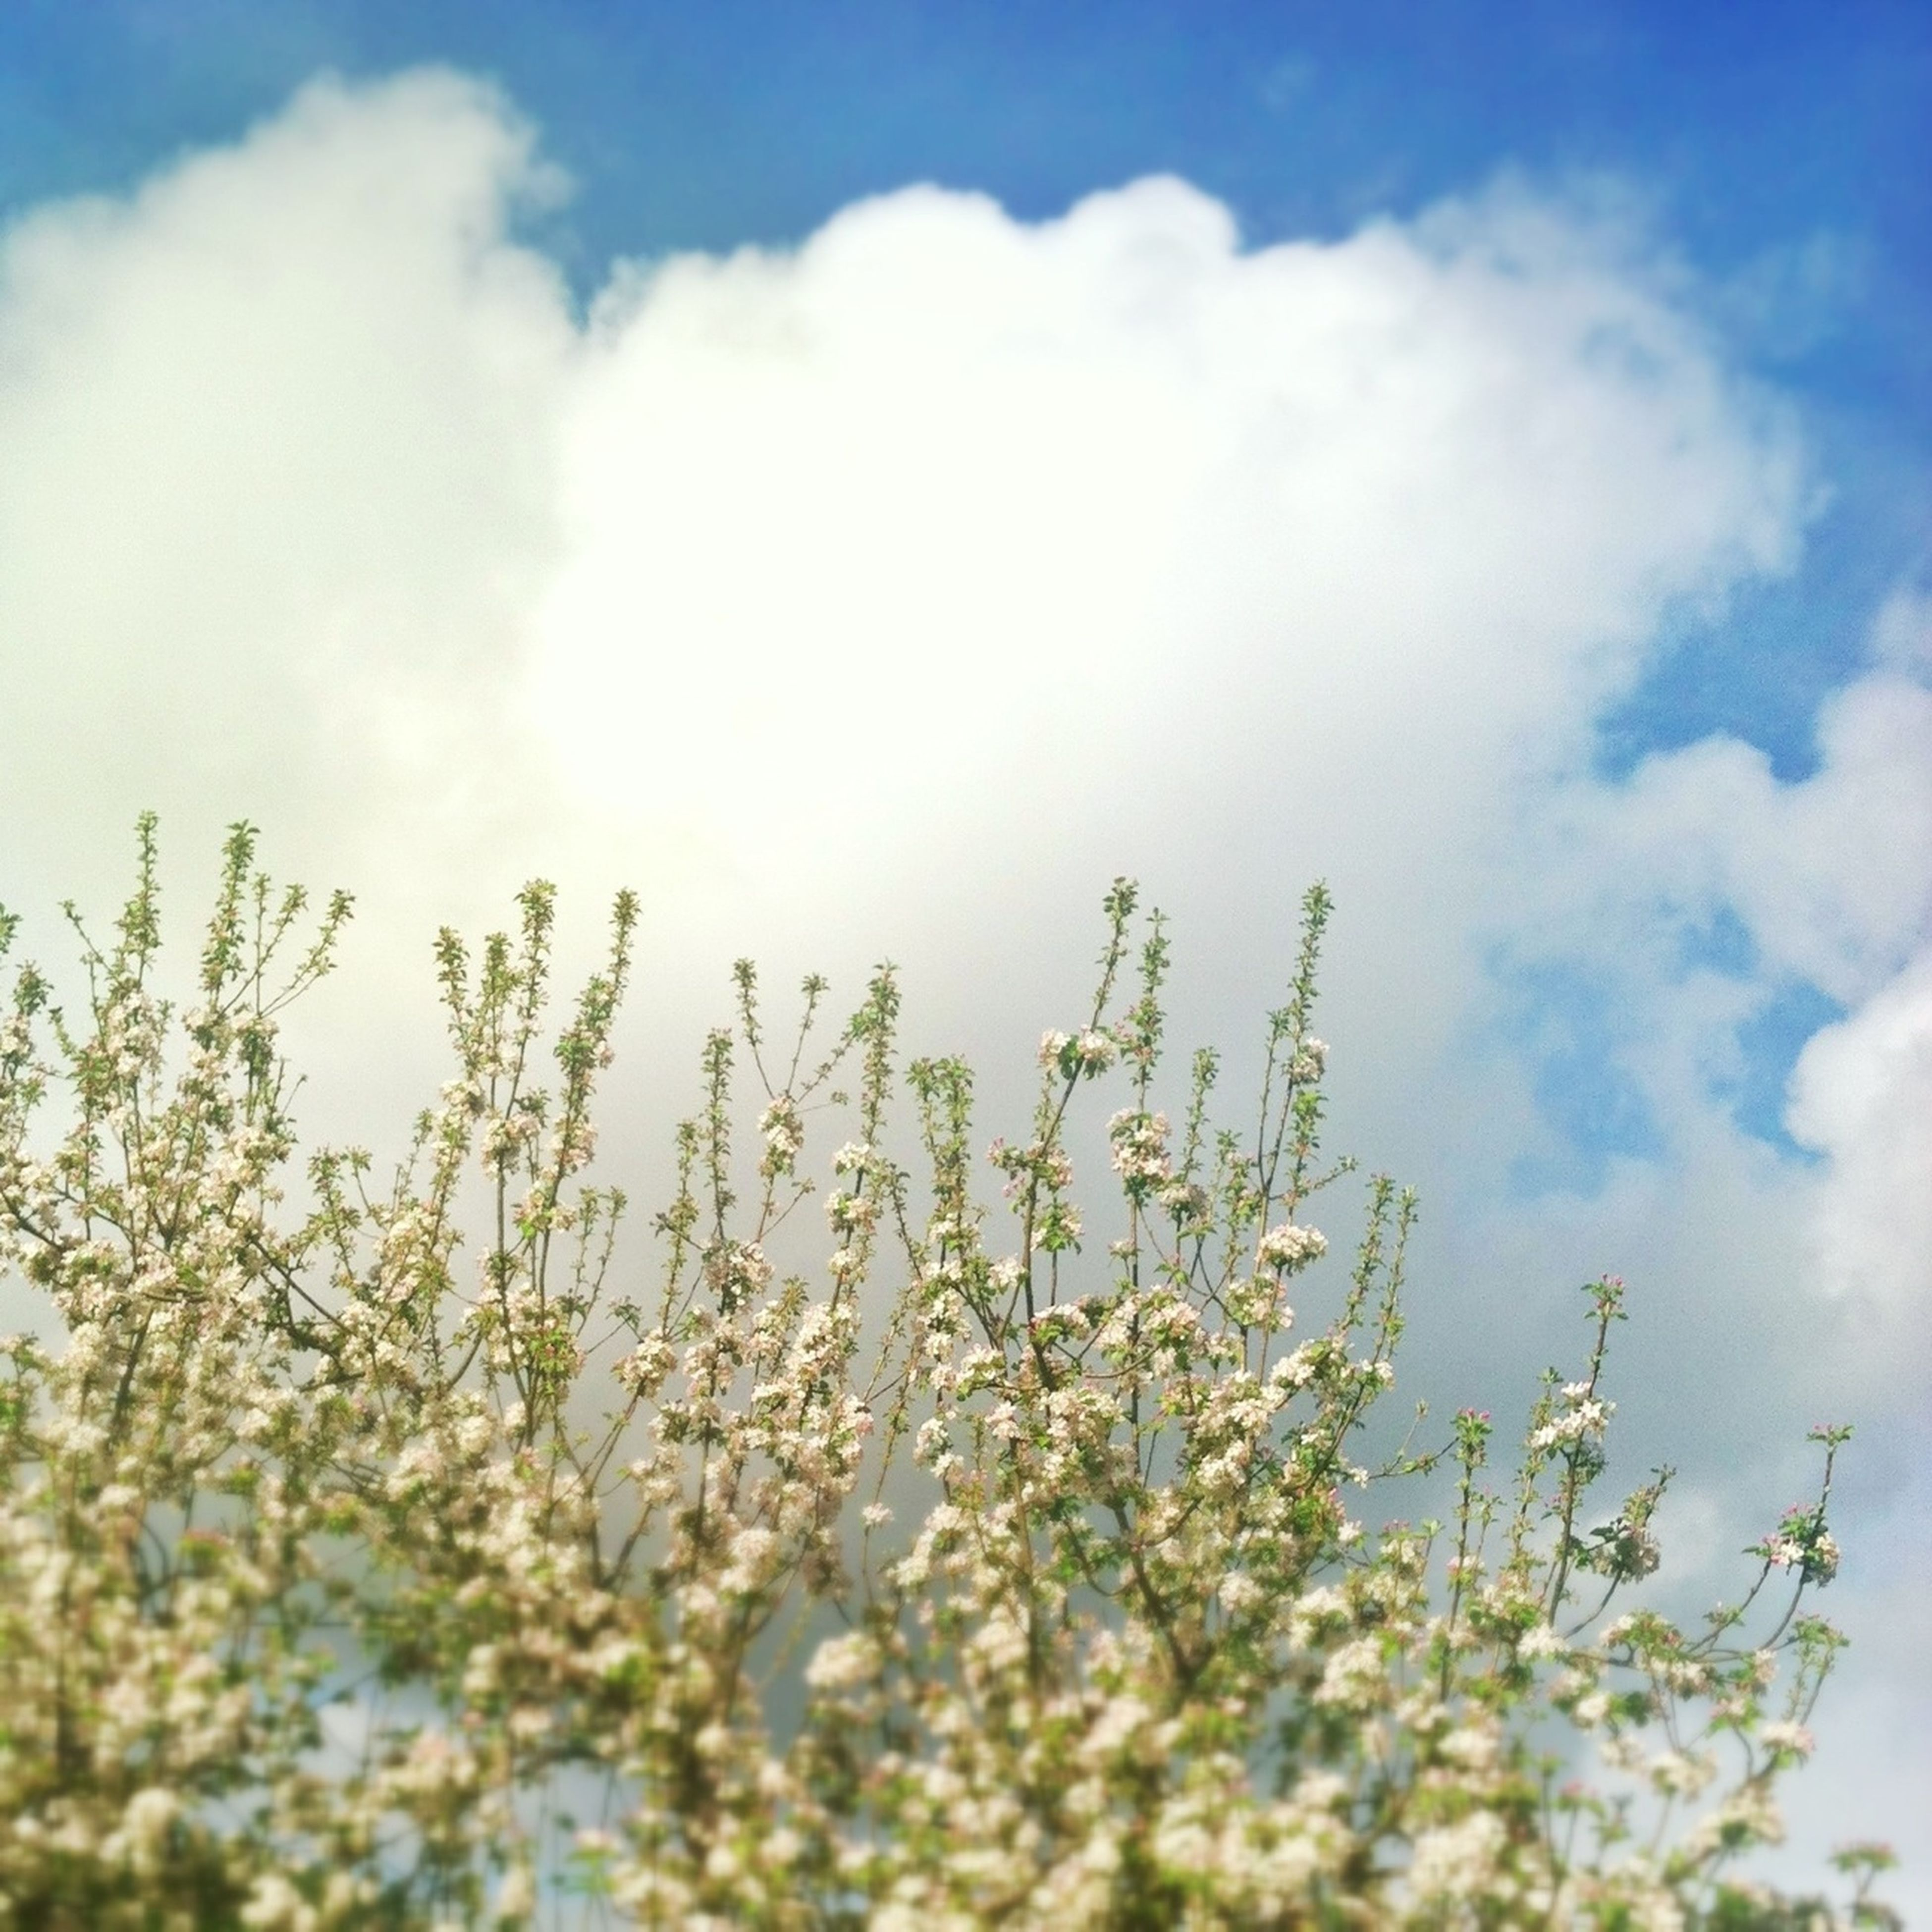 flower, growth, freshness, sky, beauty in nature, fragility, nature, cloud - sky, plant, low angle view, blooming, petal, in bloom, white color, cloud, blossom, tranquility, day, springtime, flower head